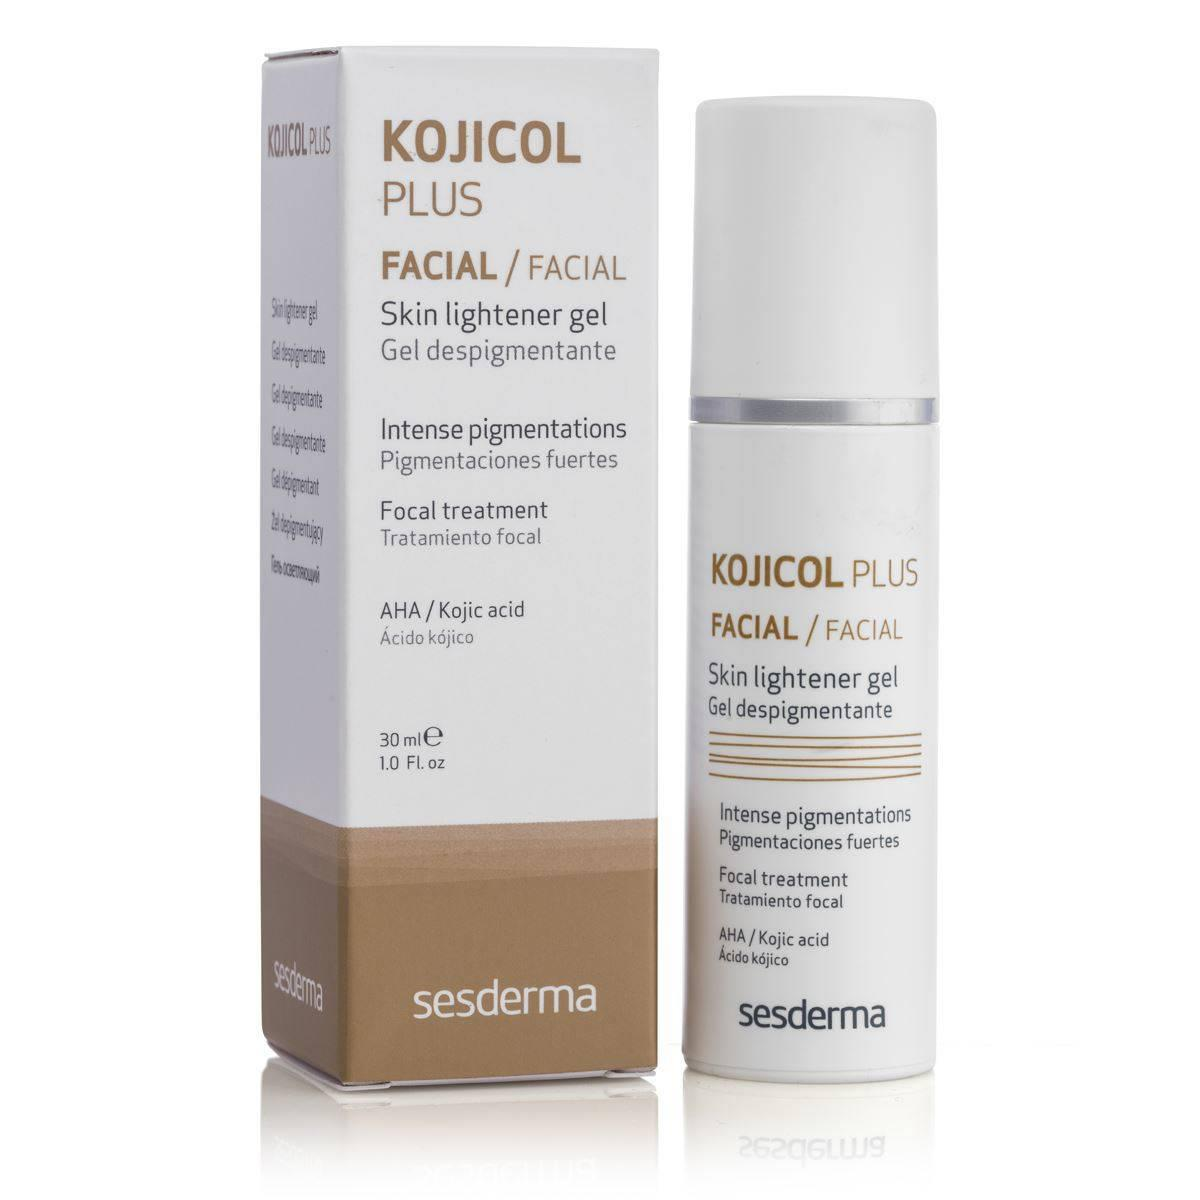 Kojicol Plus Gel Despigmente 30 Ml